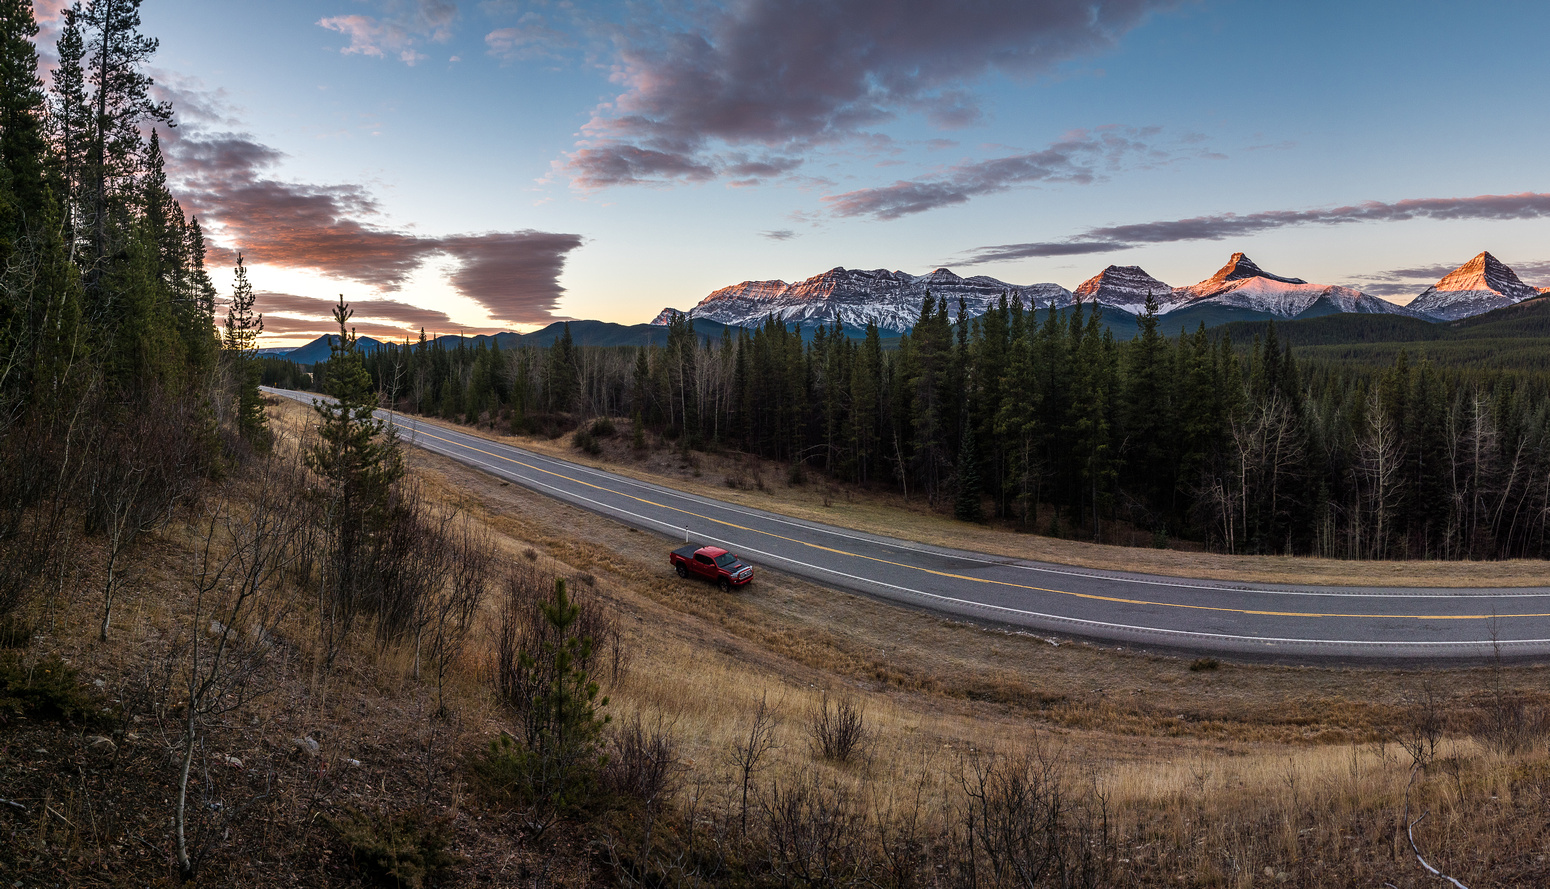 Looking across Hwy 40 just before plunging into the bush towards McPhail, Muir, Strachan and MacLaren (R to L).